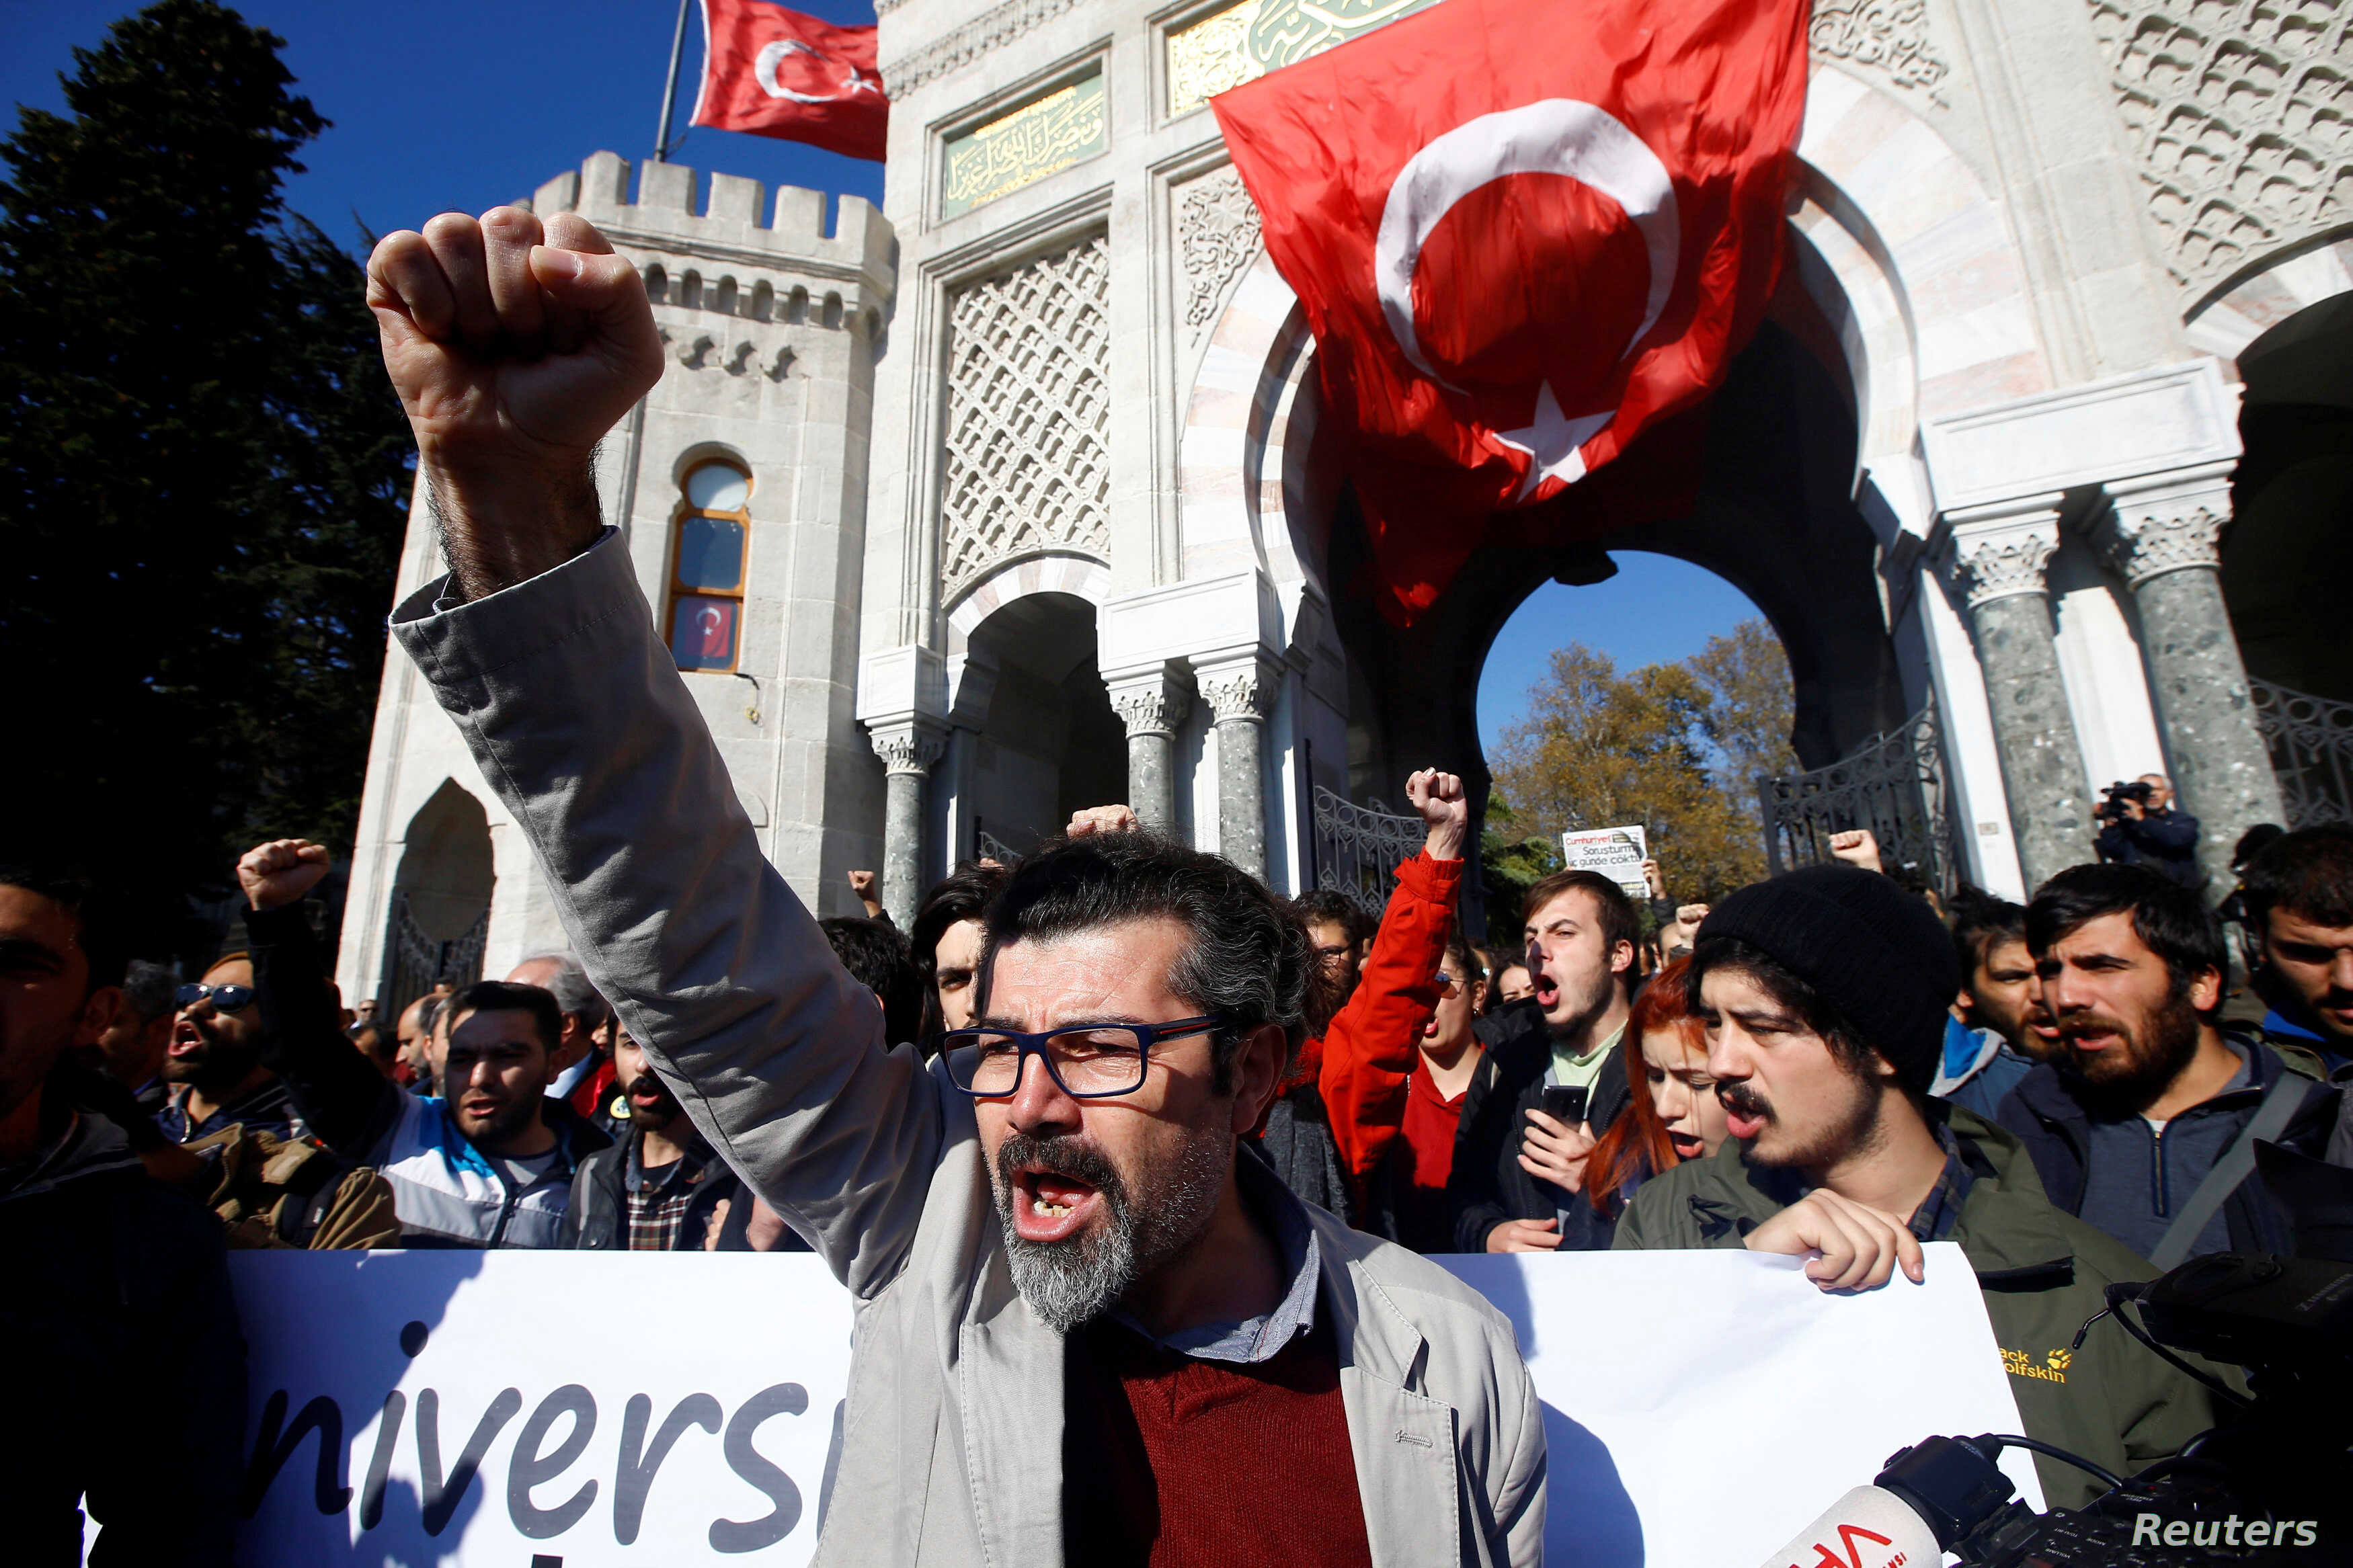 Demonstrators protest against a purge of thousands of education staff since an attempted coup in July in front of the Istanbul University, November 3, 2016. On Wednesday, November 9, 2016, it was announced that Turkish judge Aydin Sedaf Akay has been